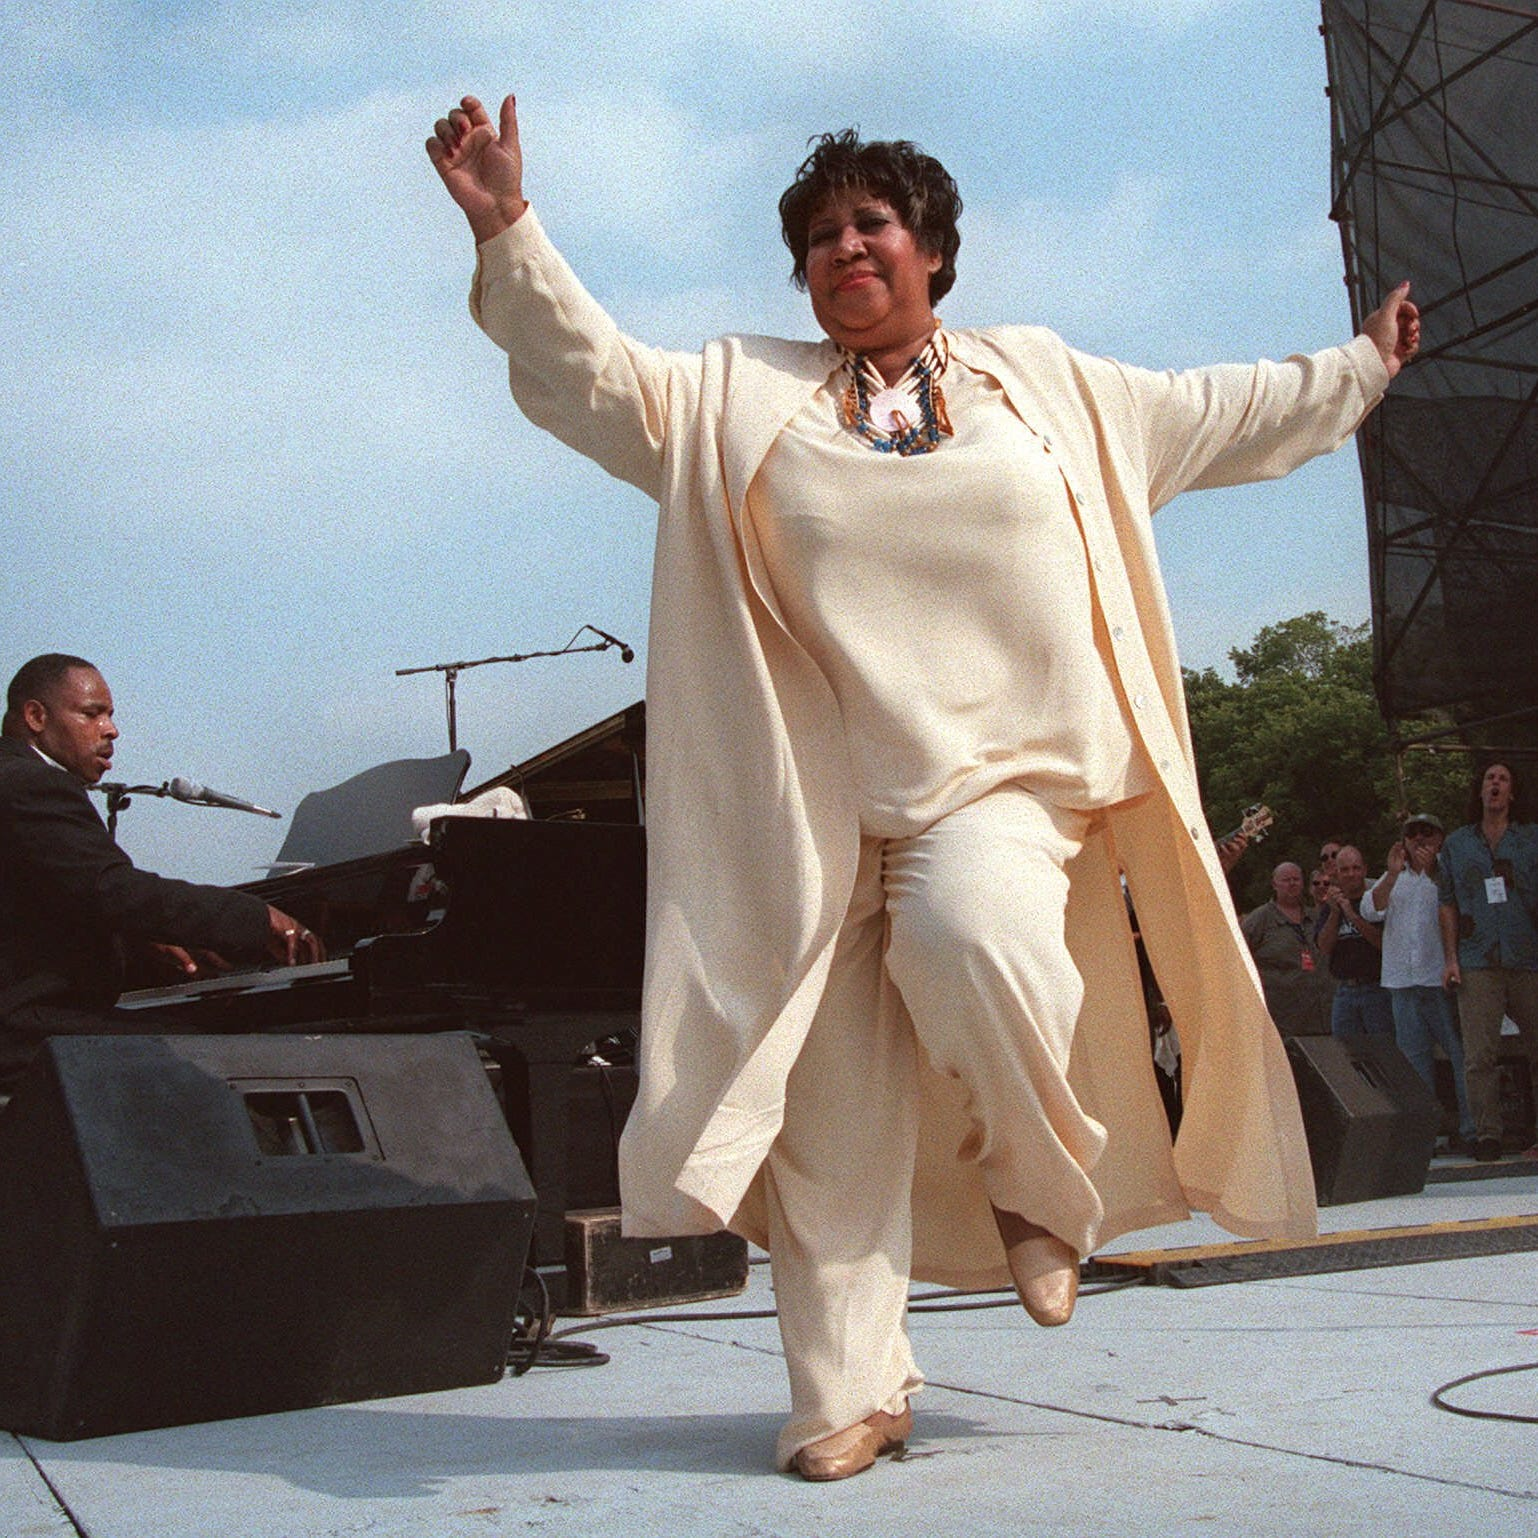 Bill would designate Lodge Freeway as Aretha Franklin Memorial Highway